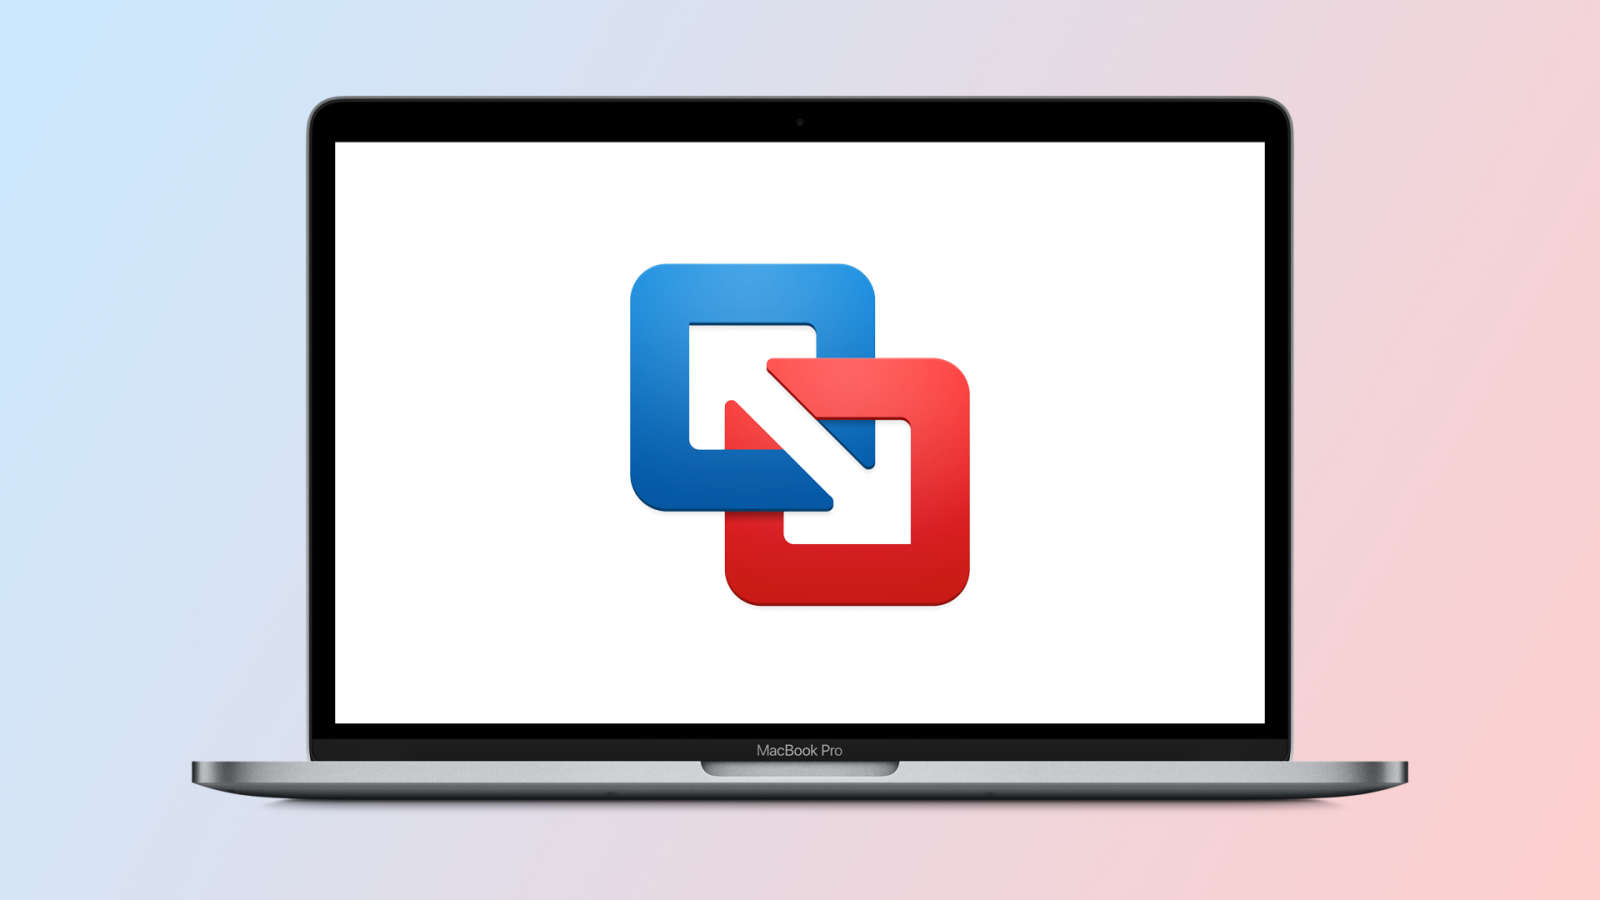 VMware Fusion for M1 Macs now available as closed beta with no Windows support